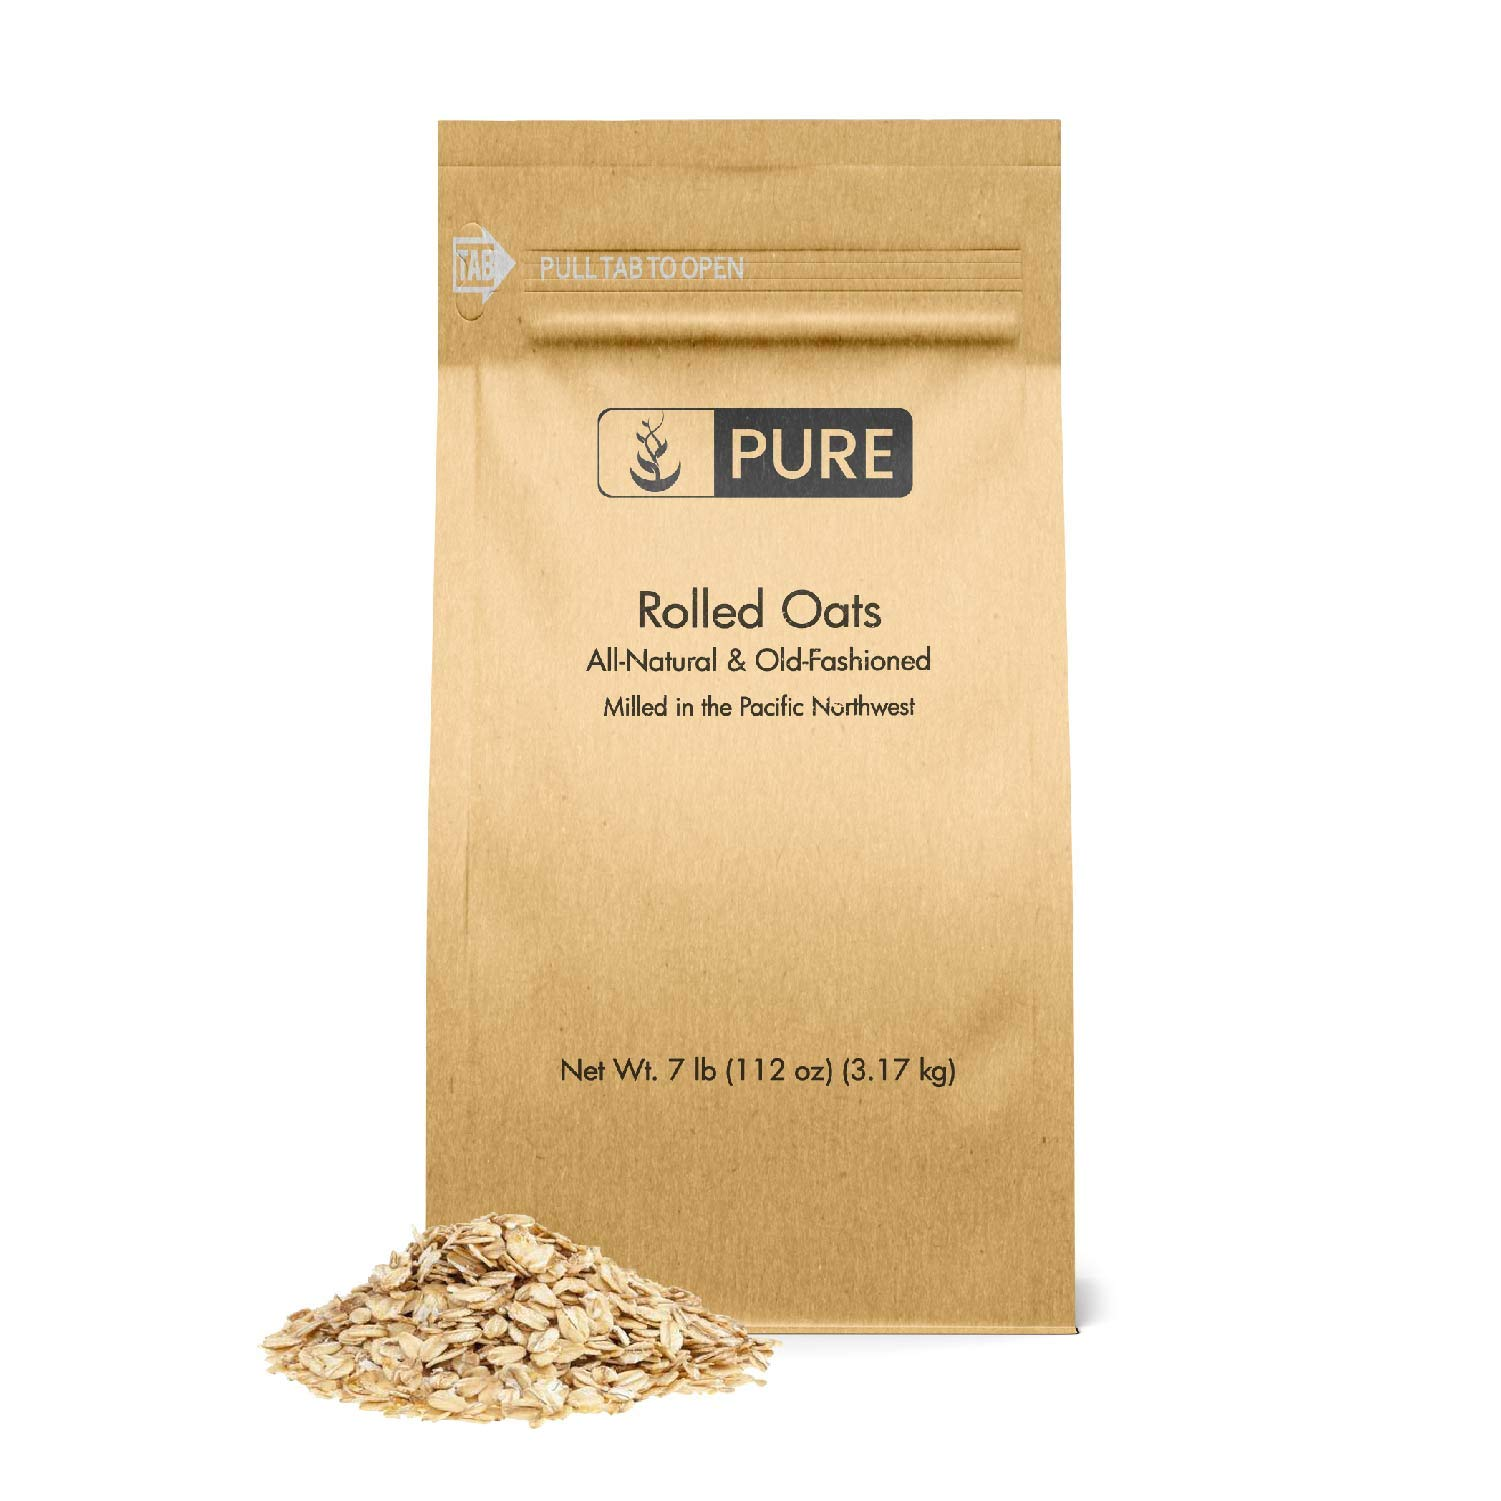 Rolled or Old-Fashioned Oats (7 lbs.) by Pure Organic Ingredients, Resealable Packaging, For Everything From Breakfast to Face Masks And More! by Pure Organic Ingredients (Image #1)